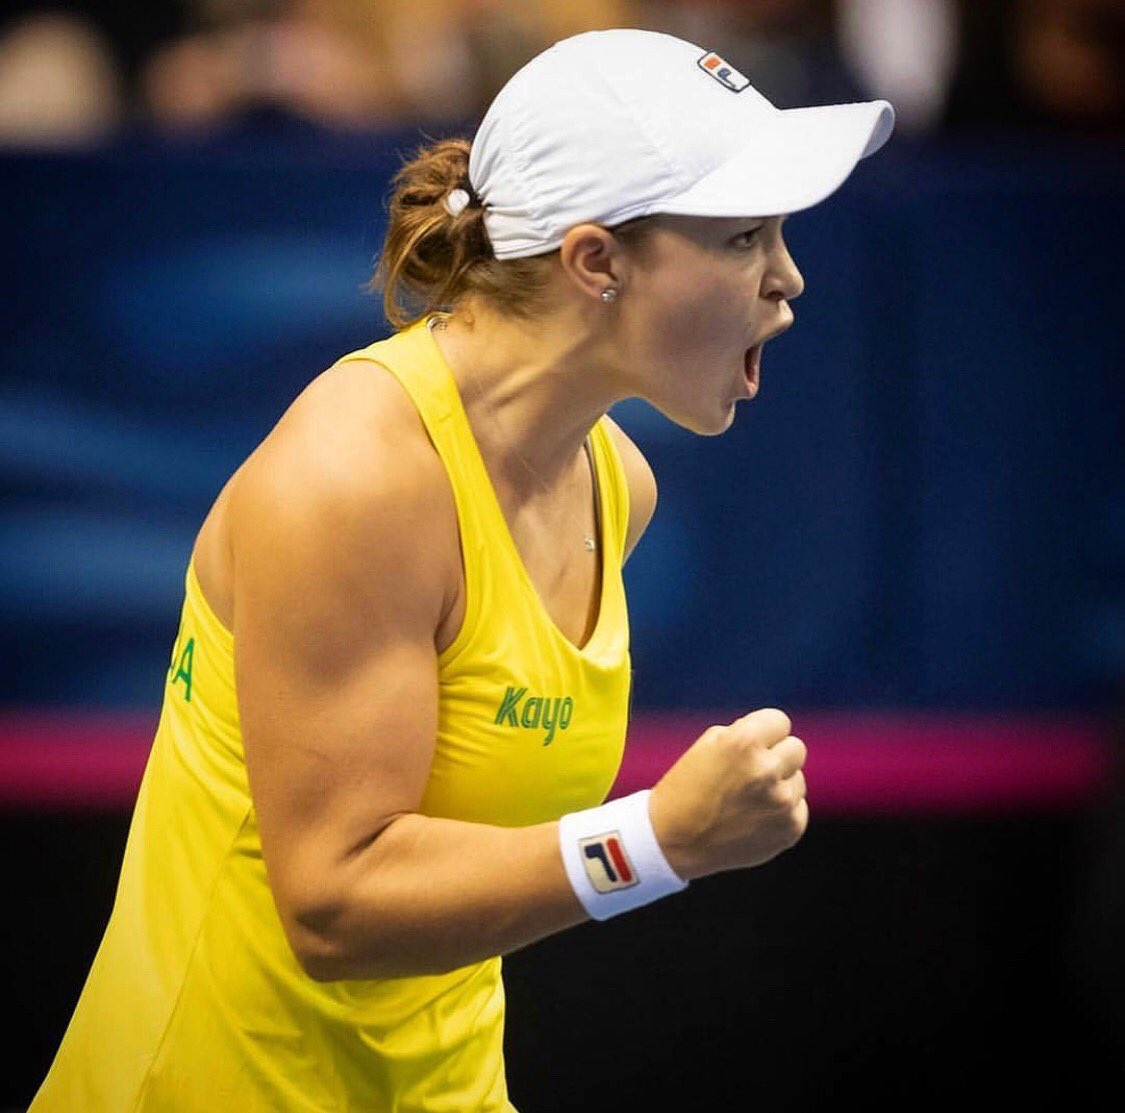 🇦🇺 1-1 🇺🇸 Everything to play for tomorrow! 💛💚 @FedCup